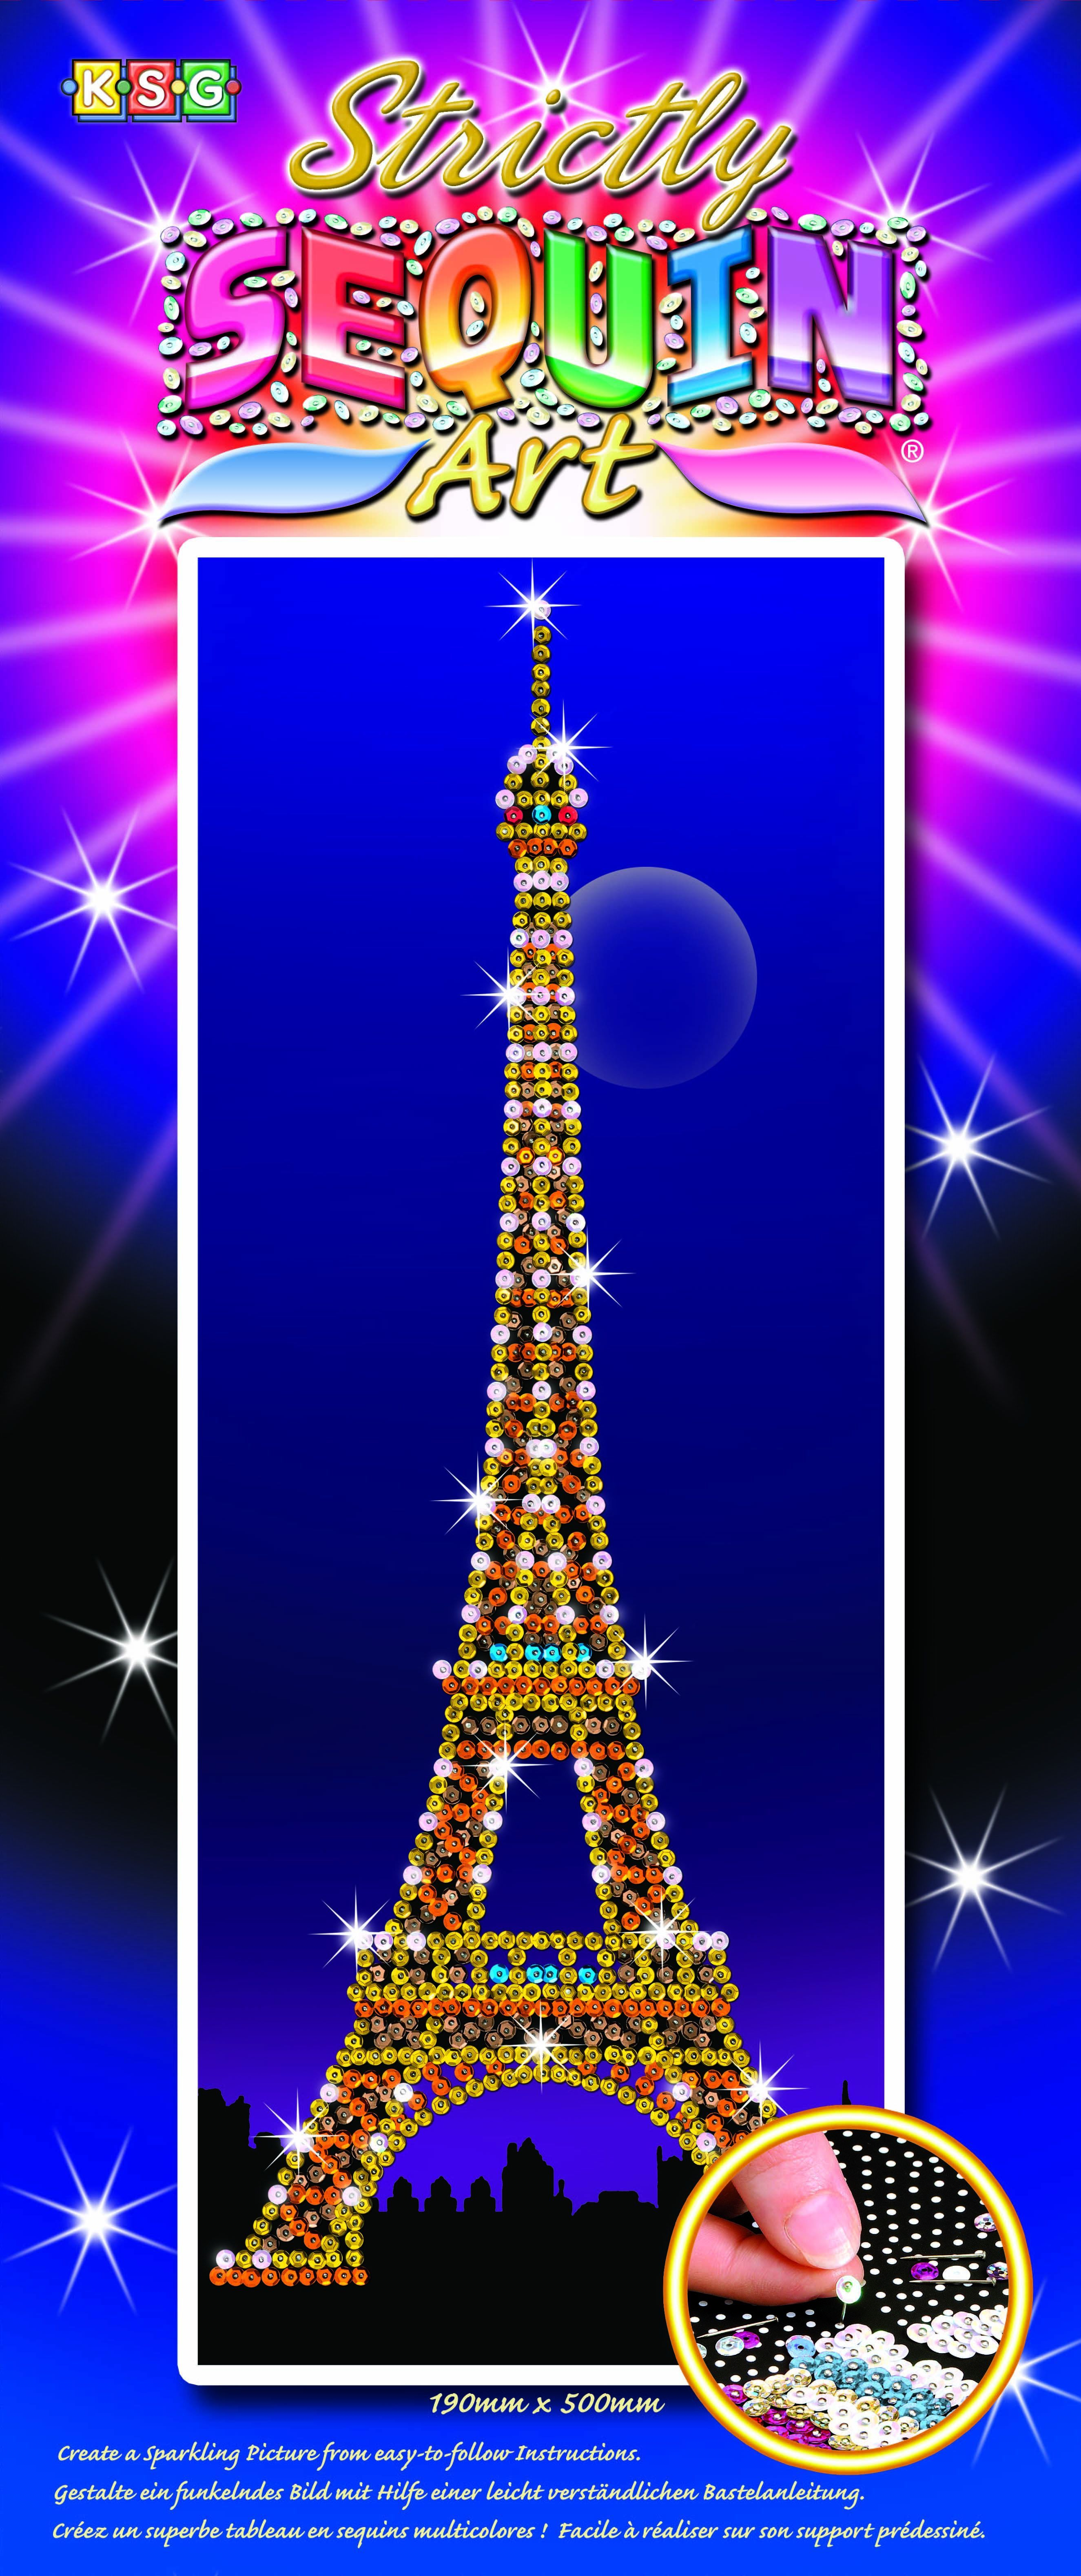 Strictly Sequin Art Eiffel Tower Sparkling Craft Picture